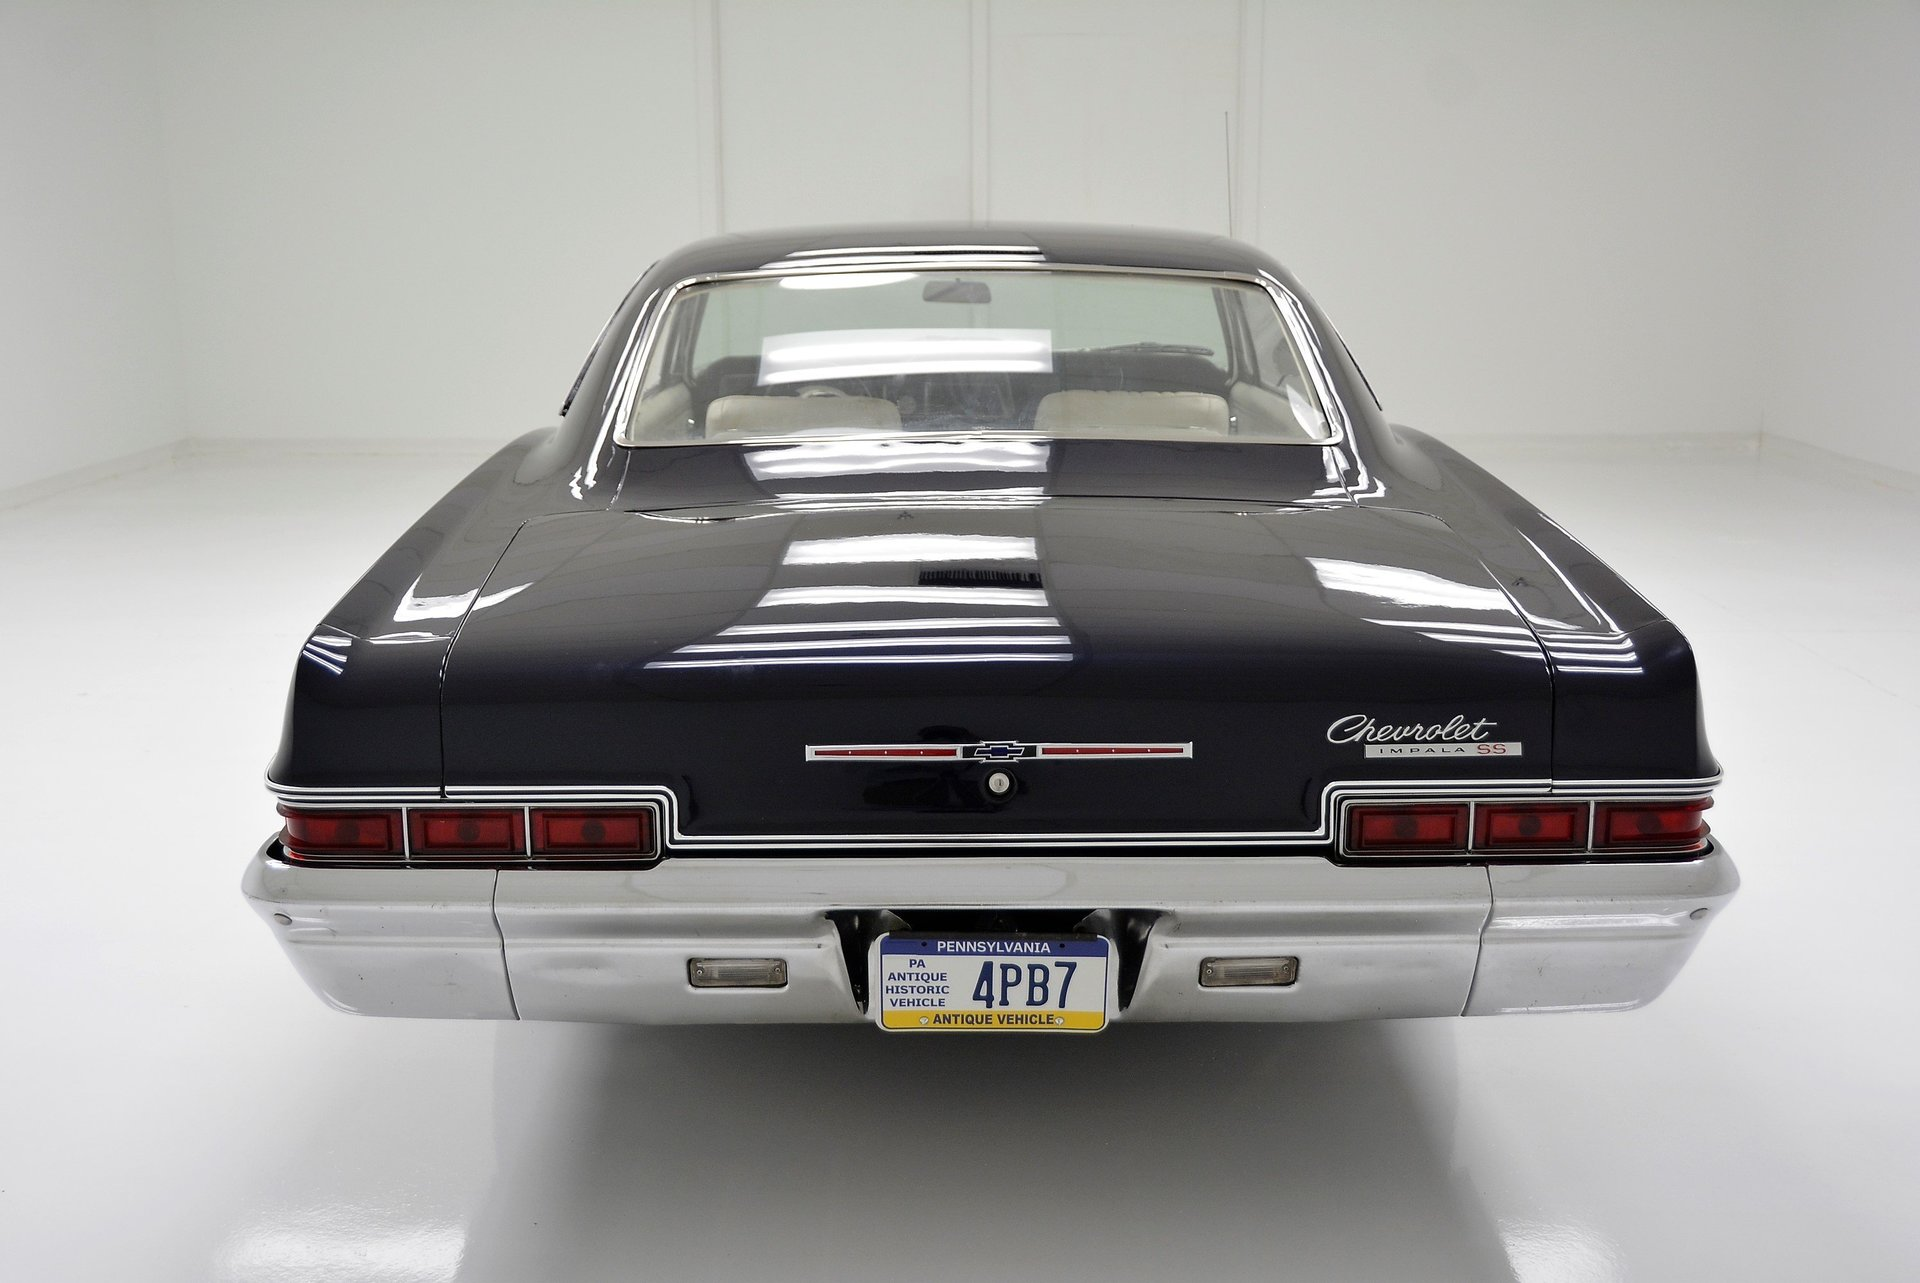 1966 Chevrolet Impala Ss Classic Auto Mall Chevy Suspension Aspect Ratio Gallery More Images